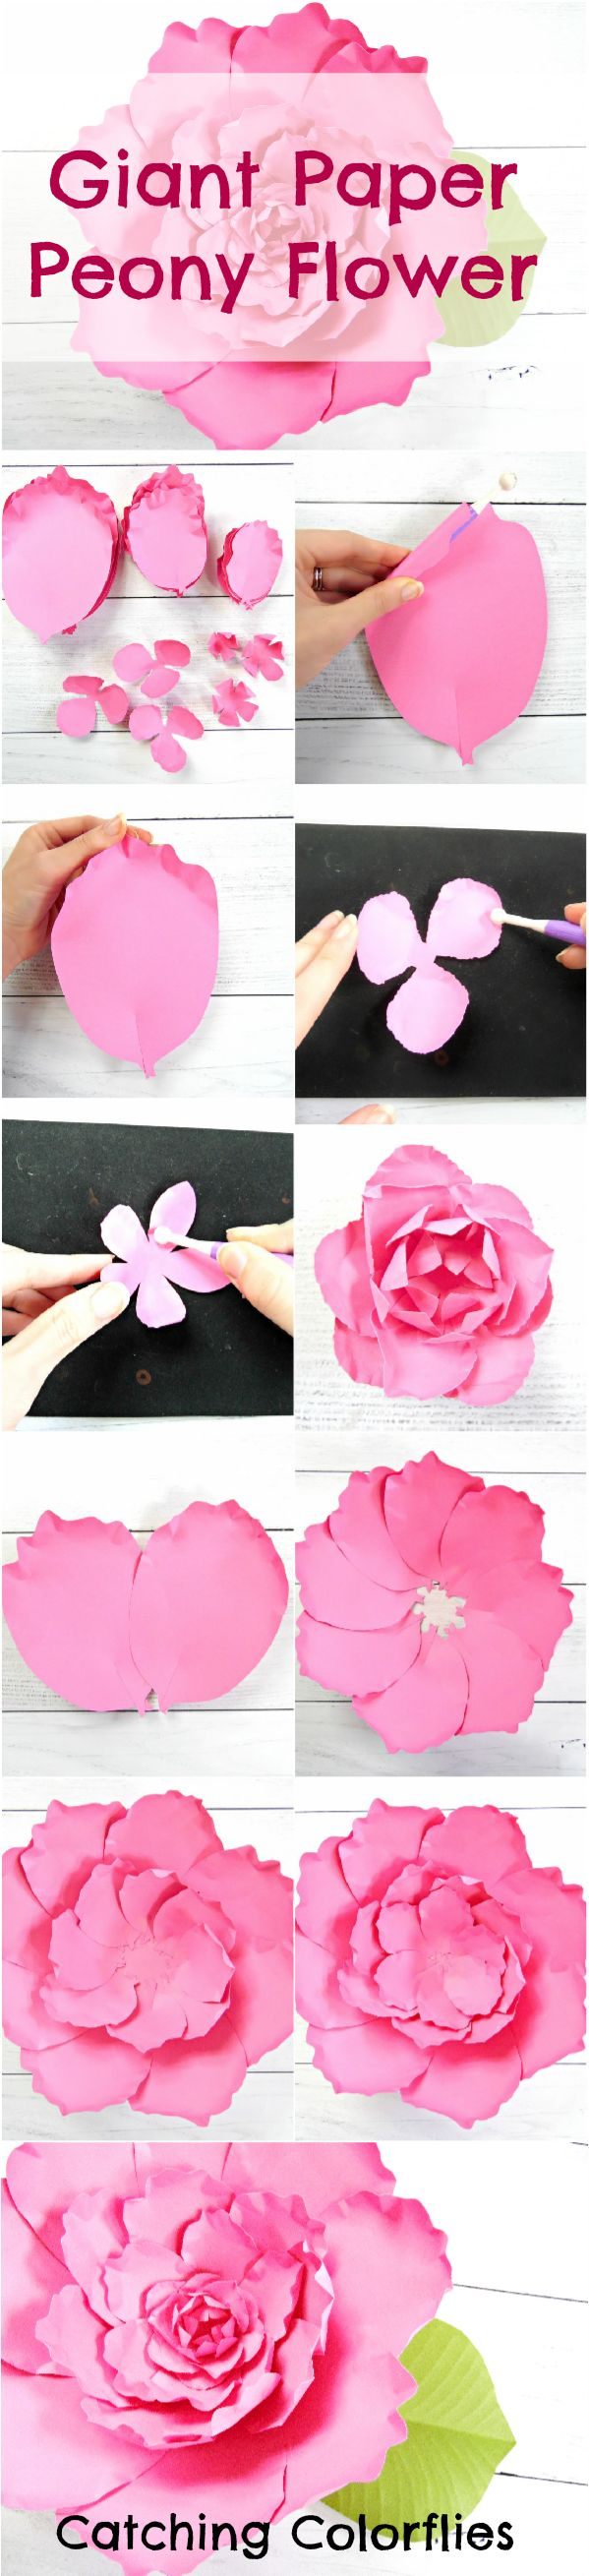 Giant Paper Flower Peony How To Make Large Paper Peony Flowers Printable  Flower Templates